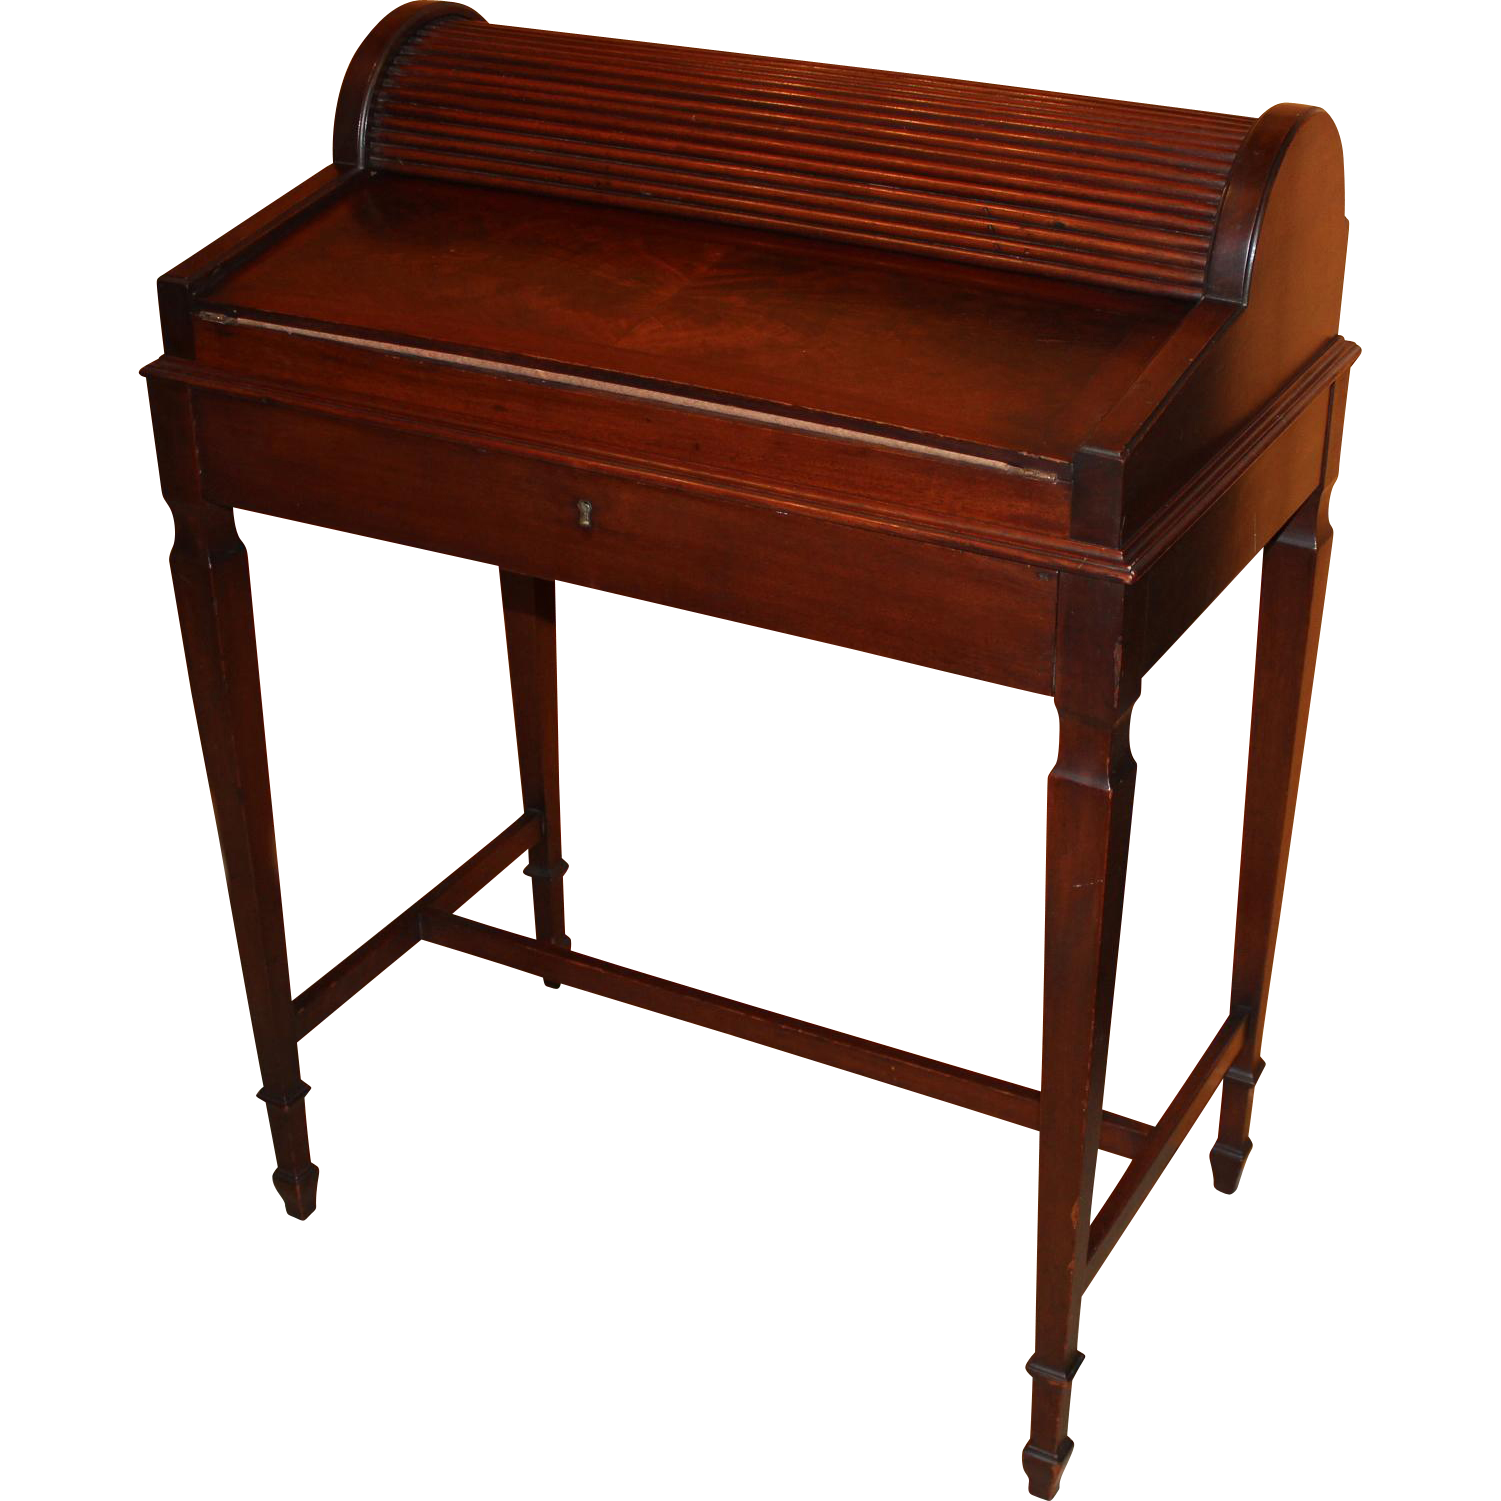 shaw furniture co petite roll top writing desk cambridge ma circa